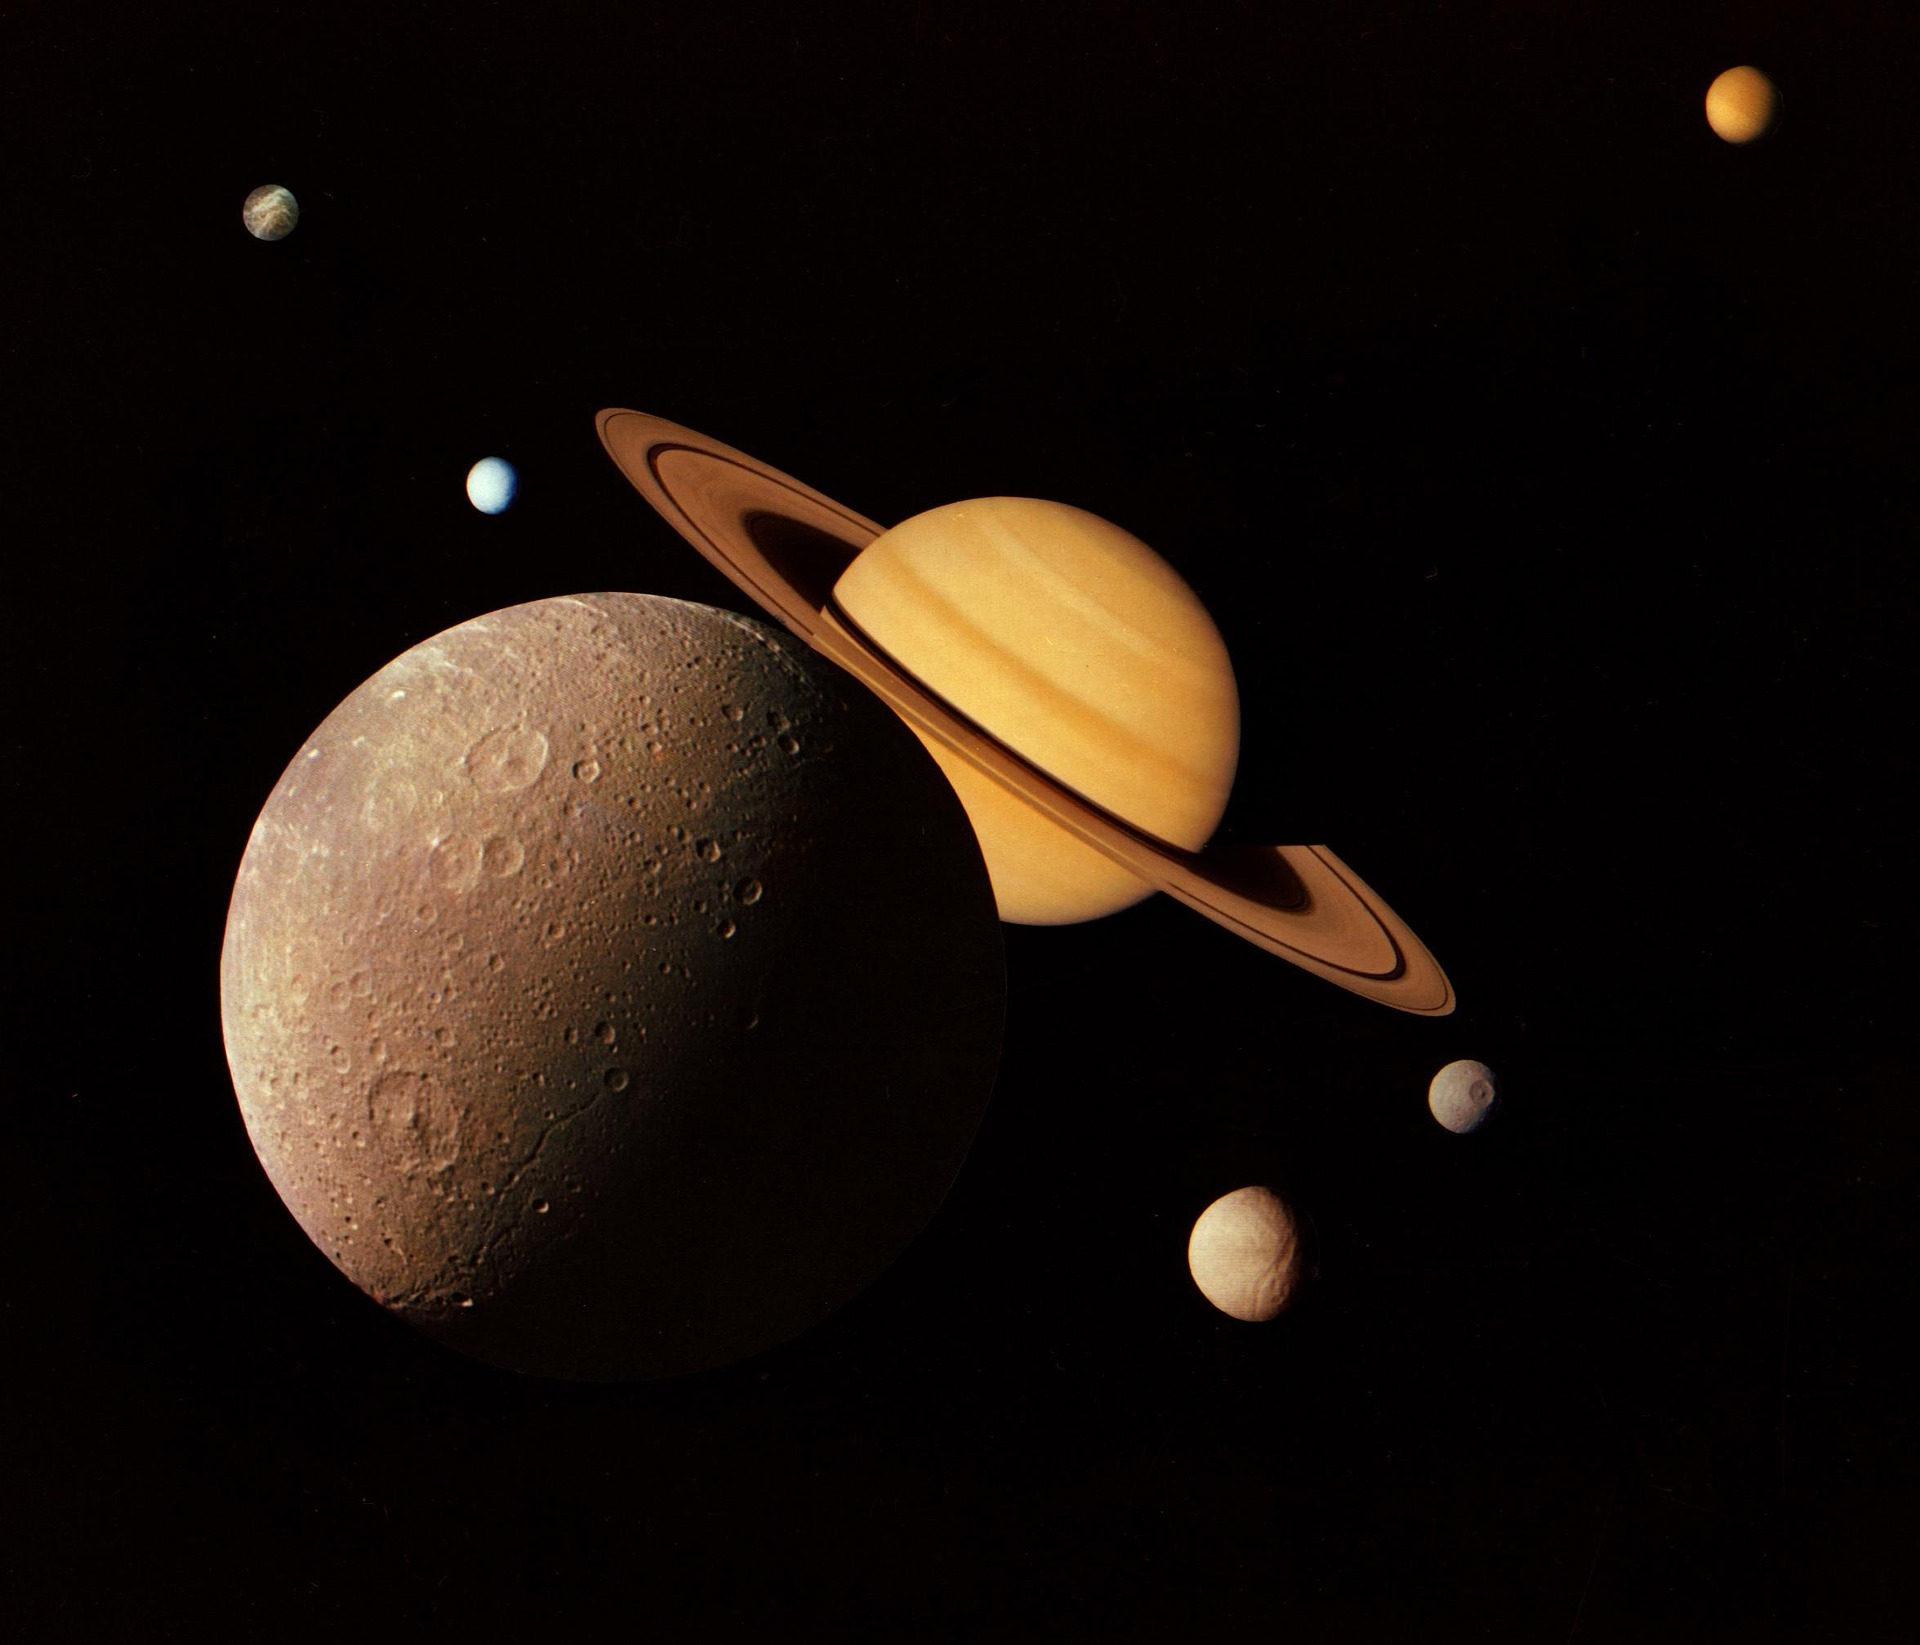 Saturn Now Has The Highest Number Of Moons In Solar System, With Discovery Of 20 New Moons